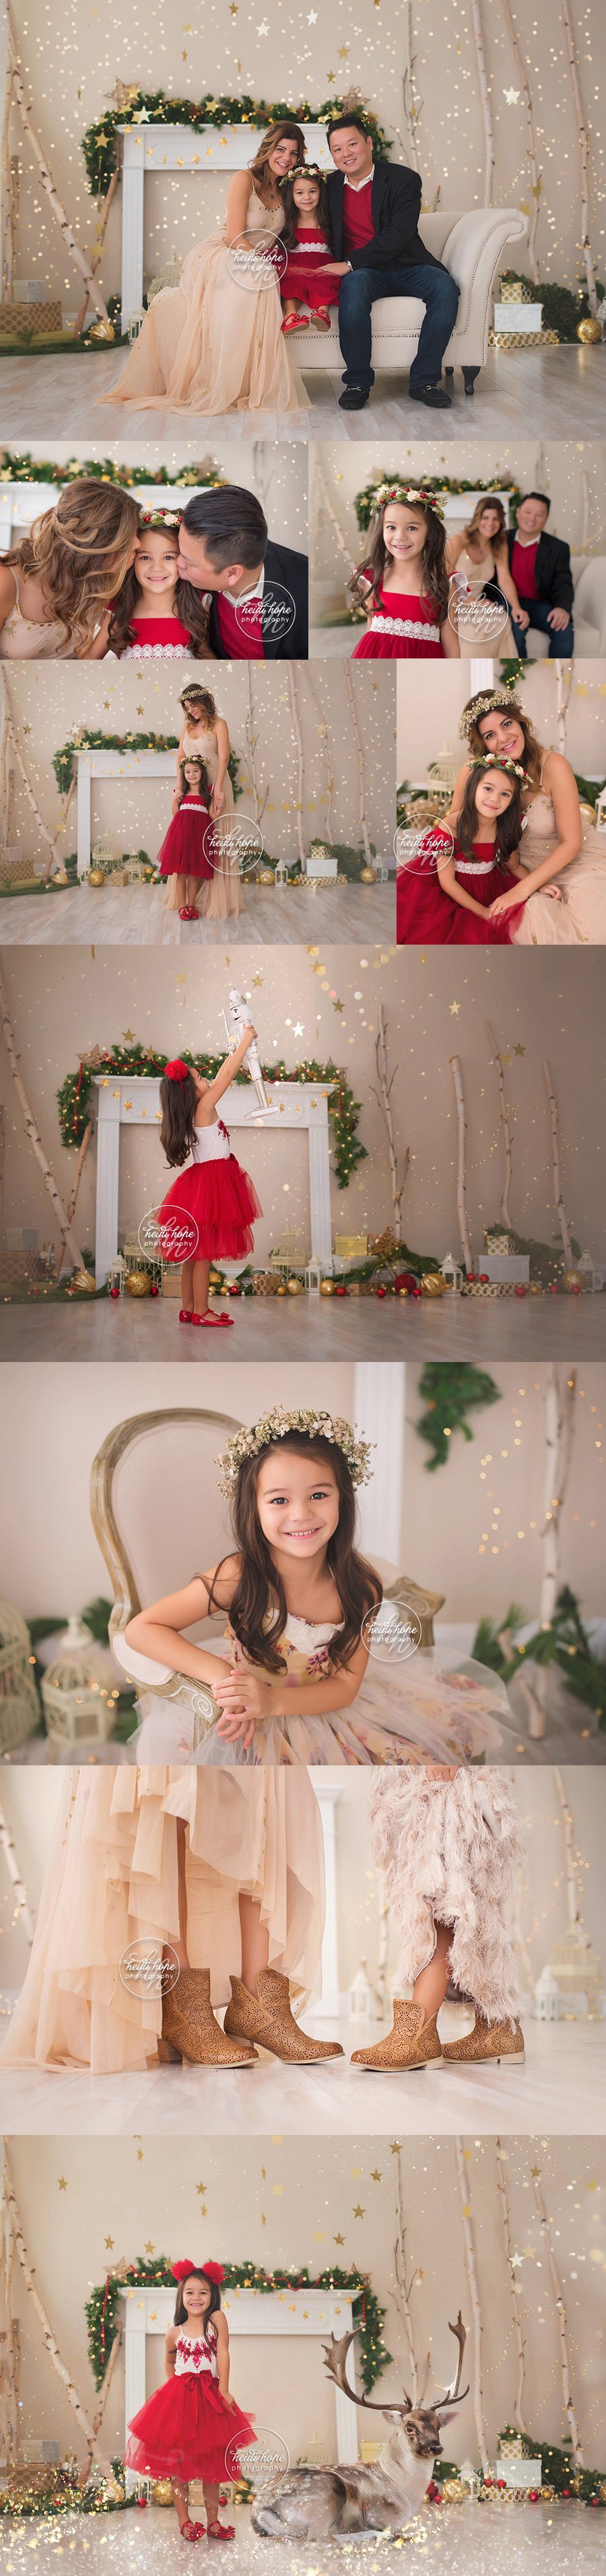 magical-christmas-holiday-portraits-in-studio-with-nutcraker-reindeer-and-lights